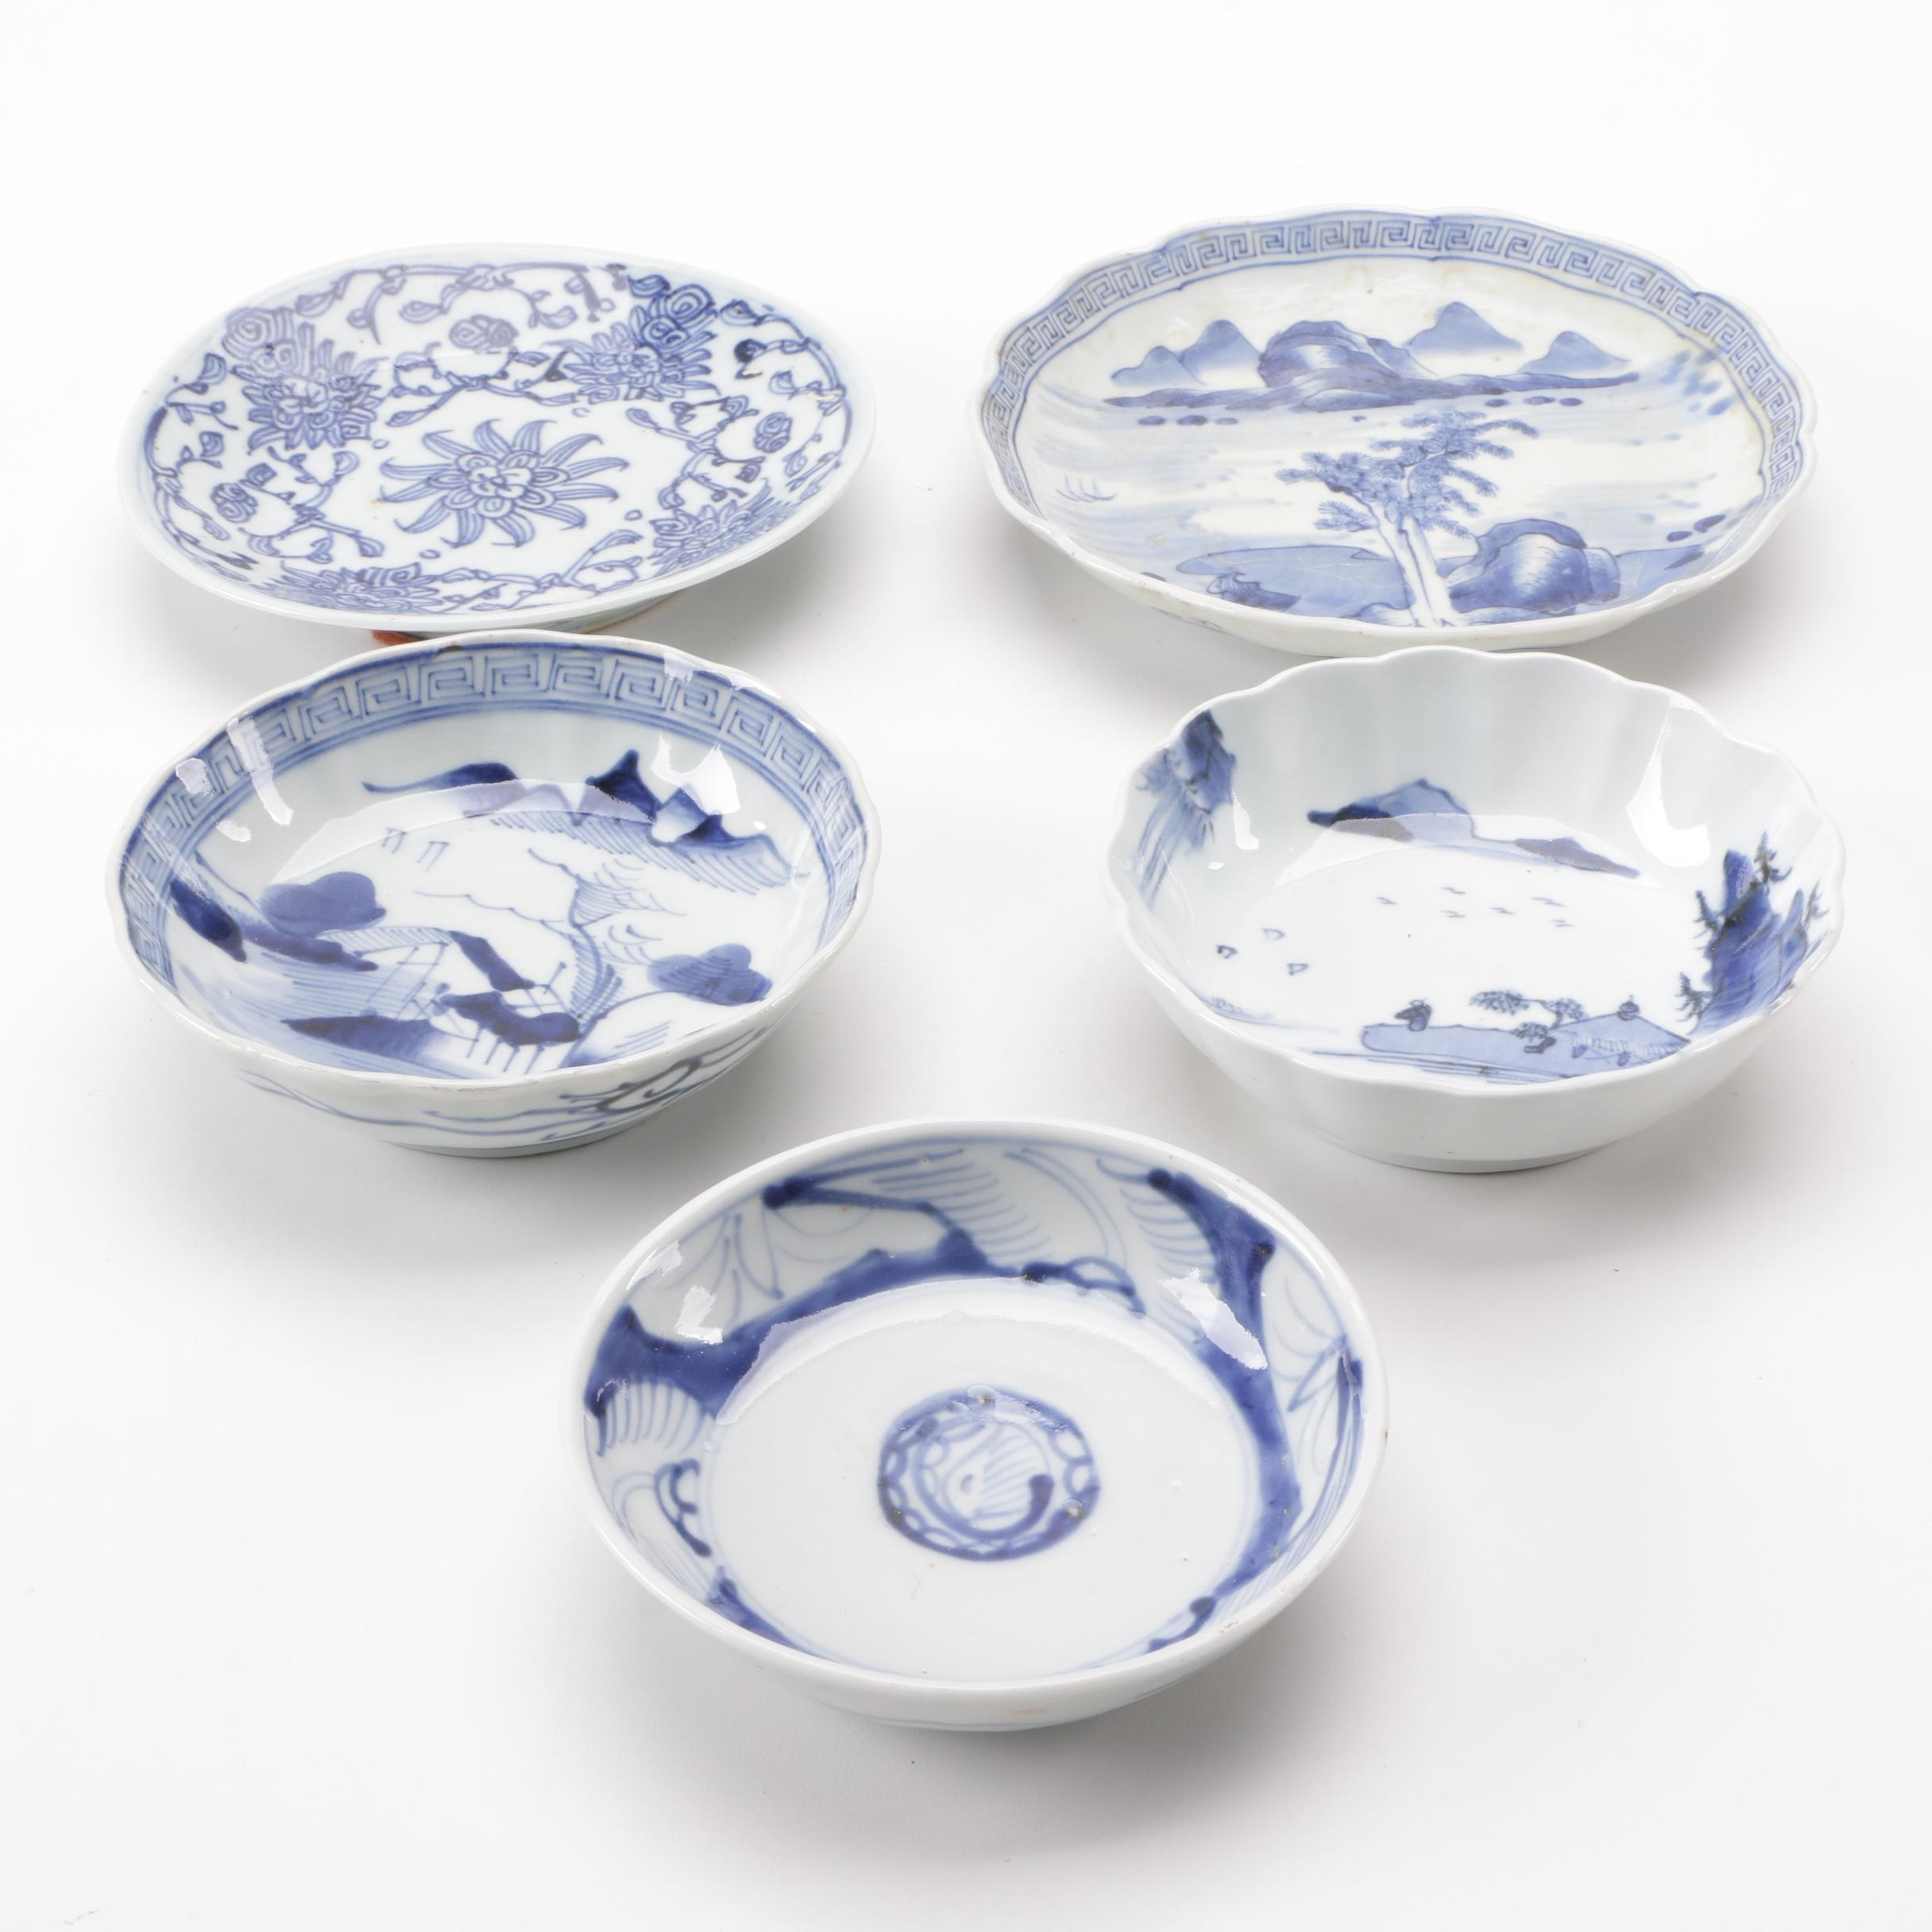 Chinese Blue and White Porcelain Bowls and Dishes